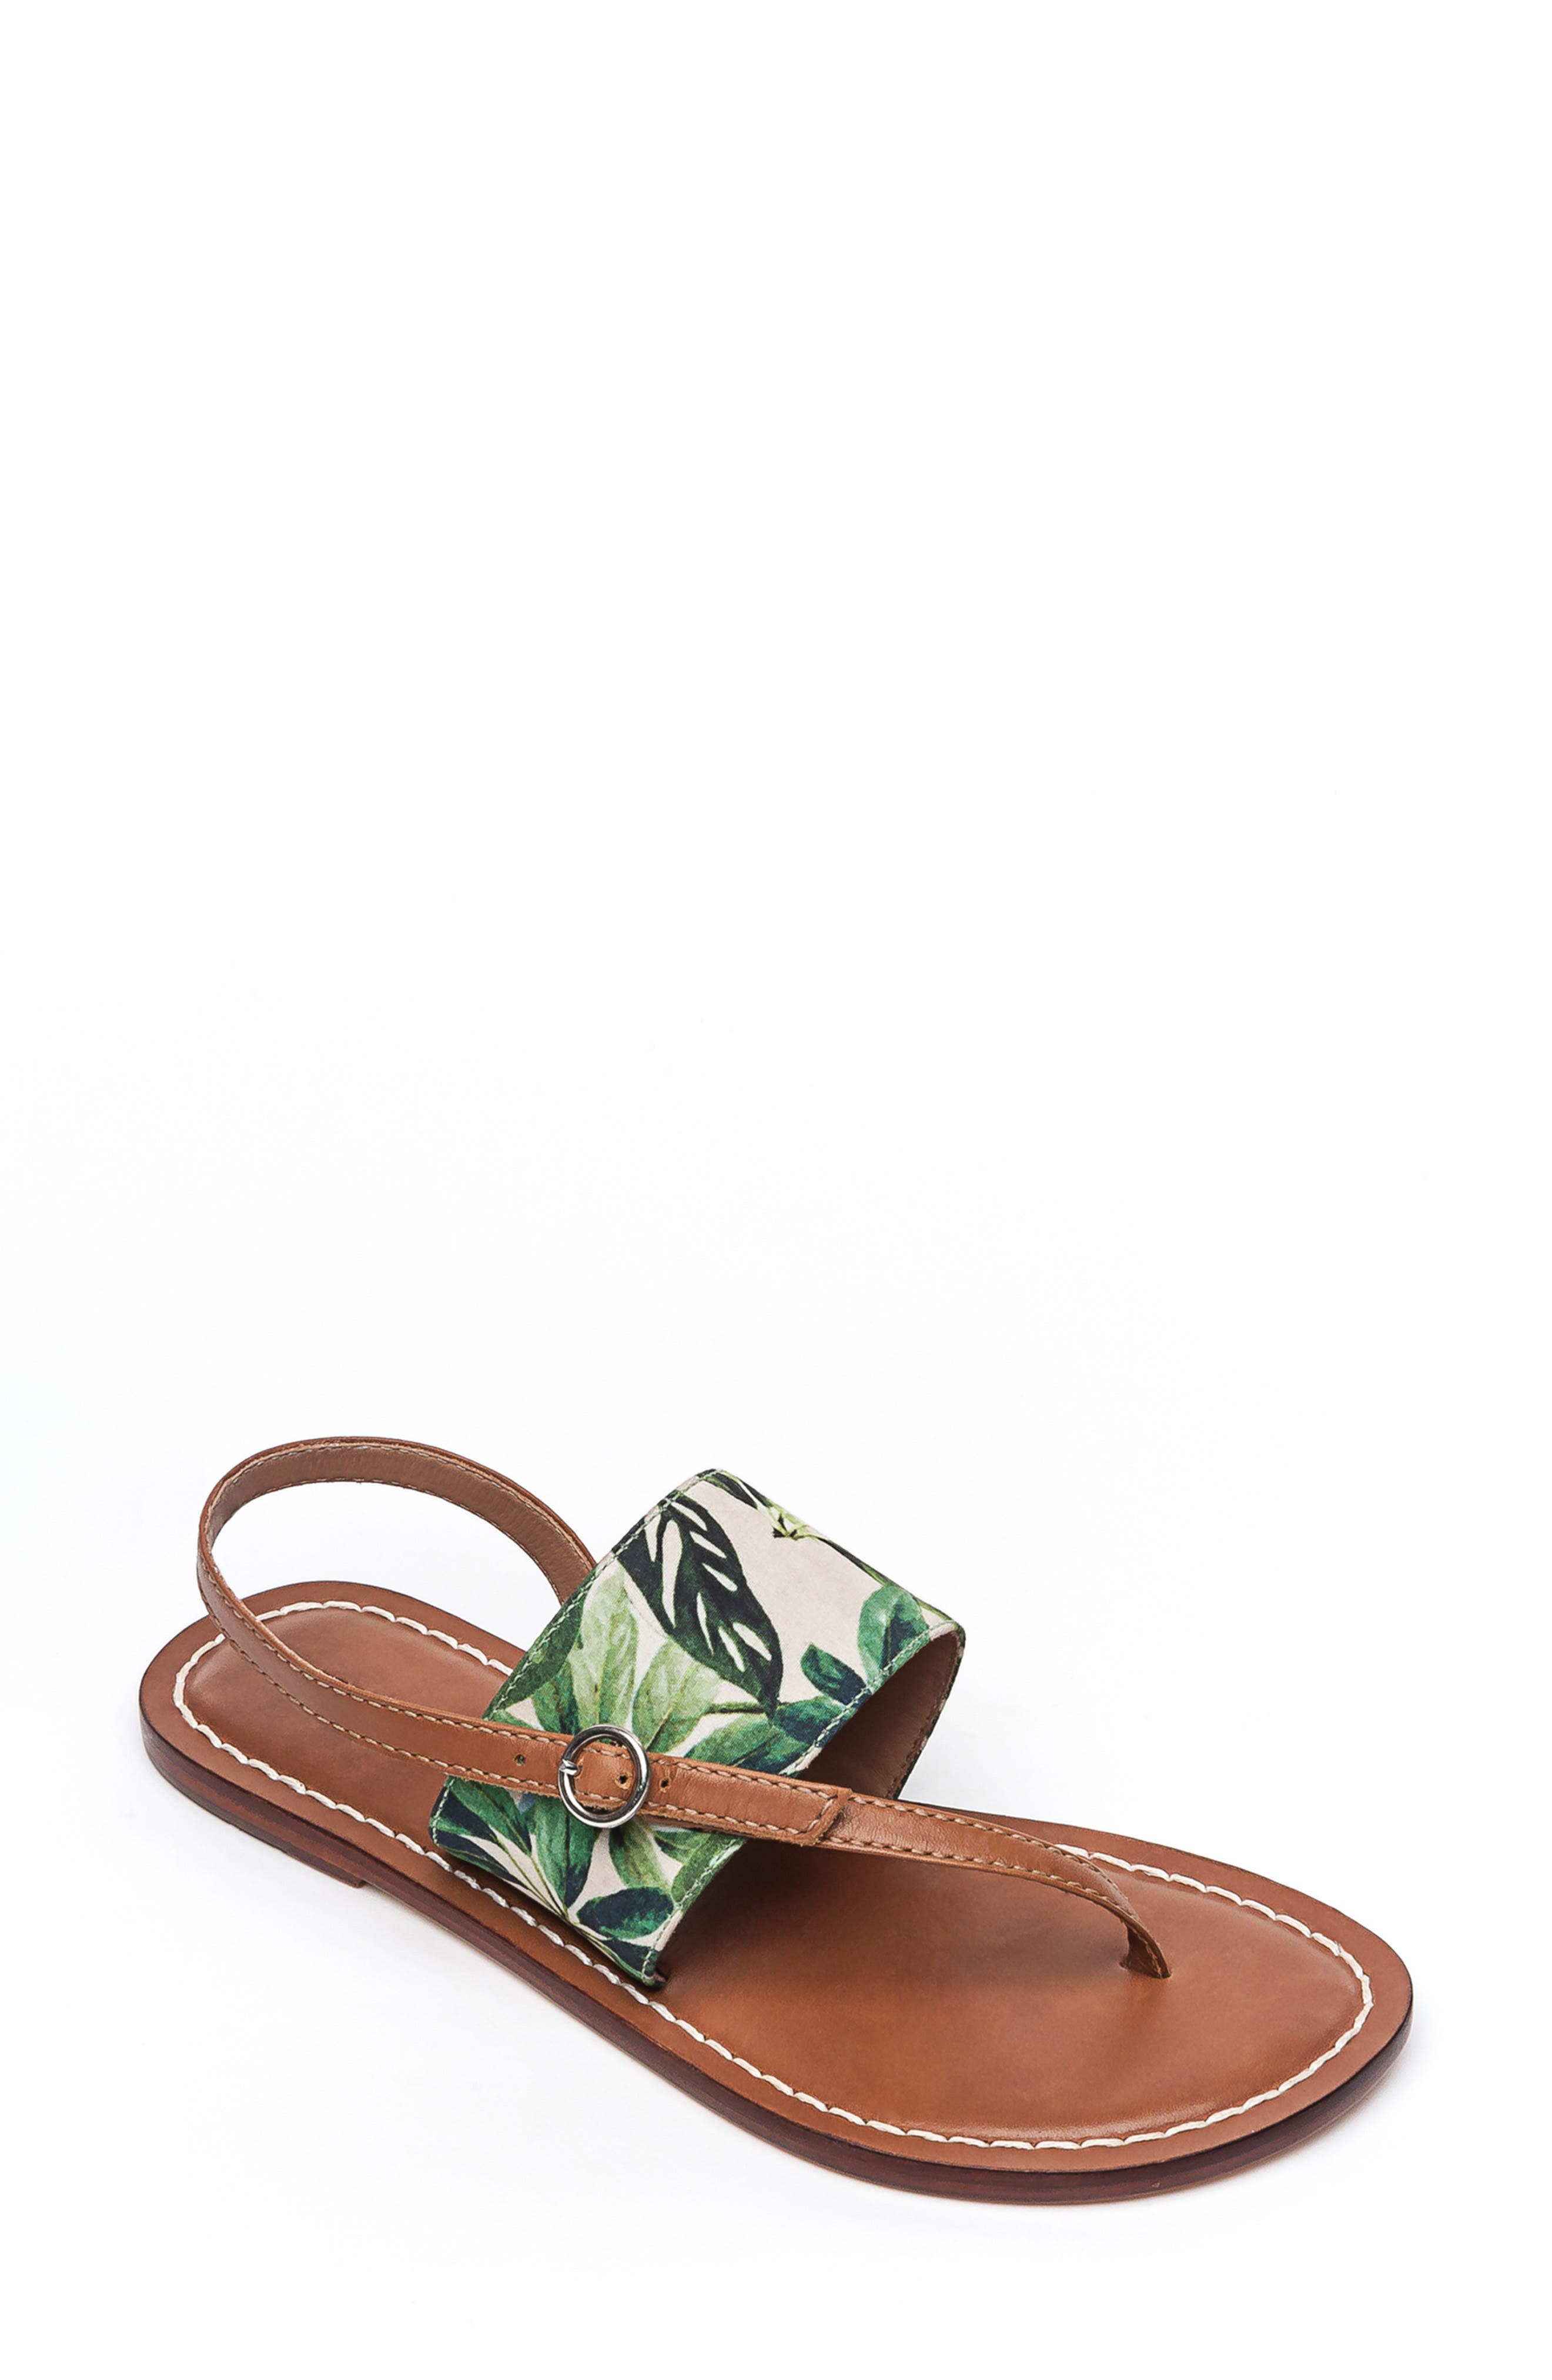 BERNARDO Footwear Meg Thong Sandal, Main, color, PALM FABRIC/ LUGGAGE LEATHER